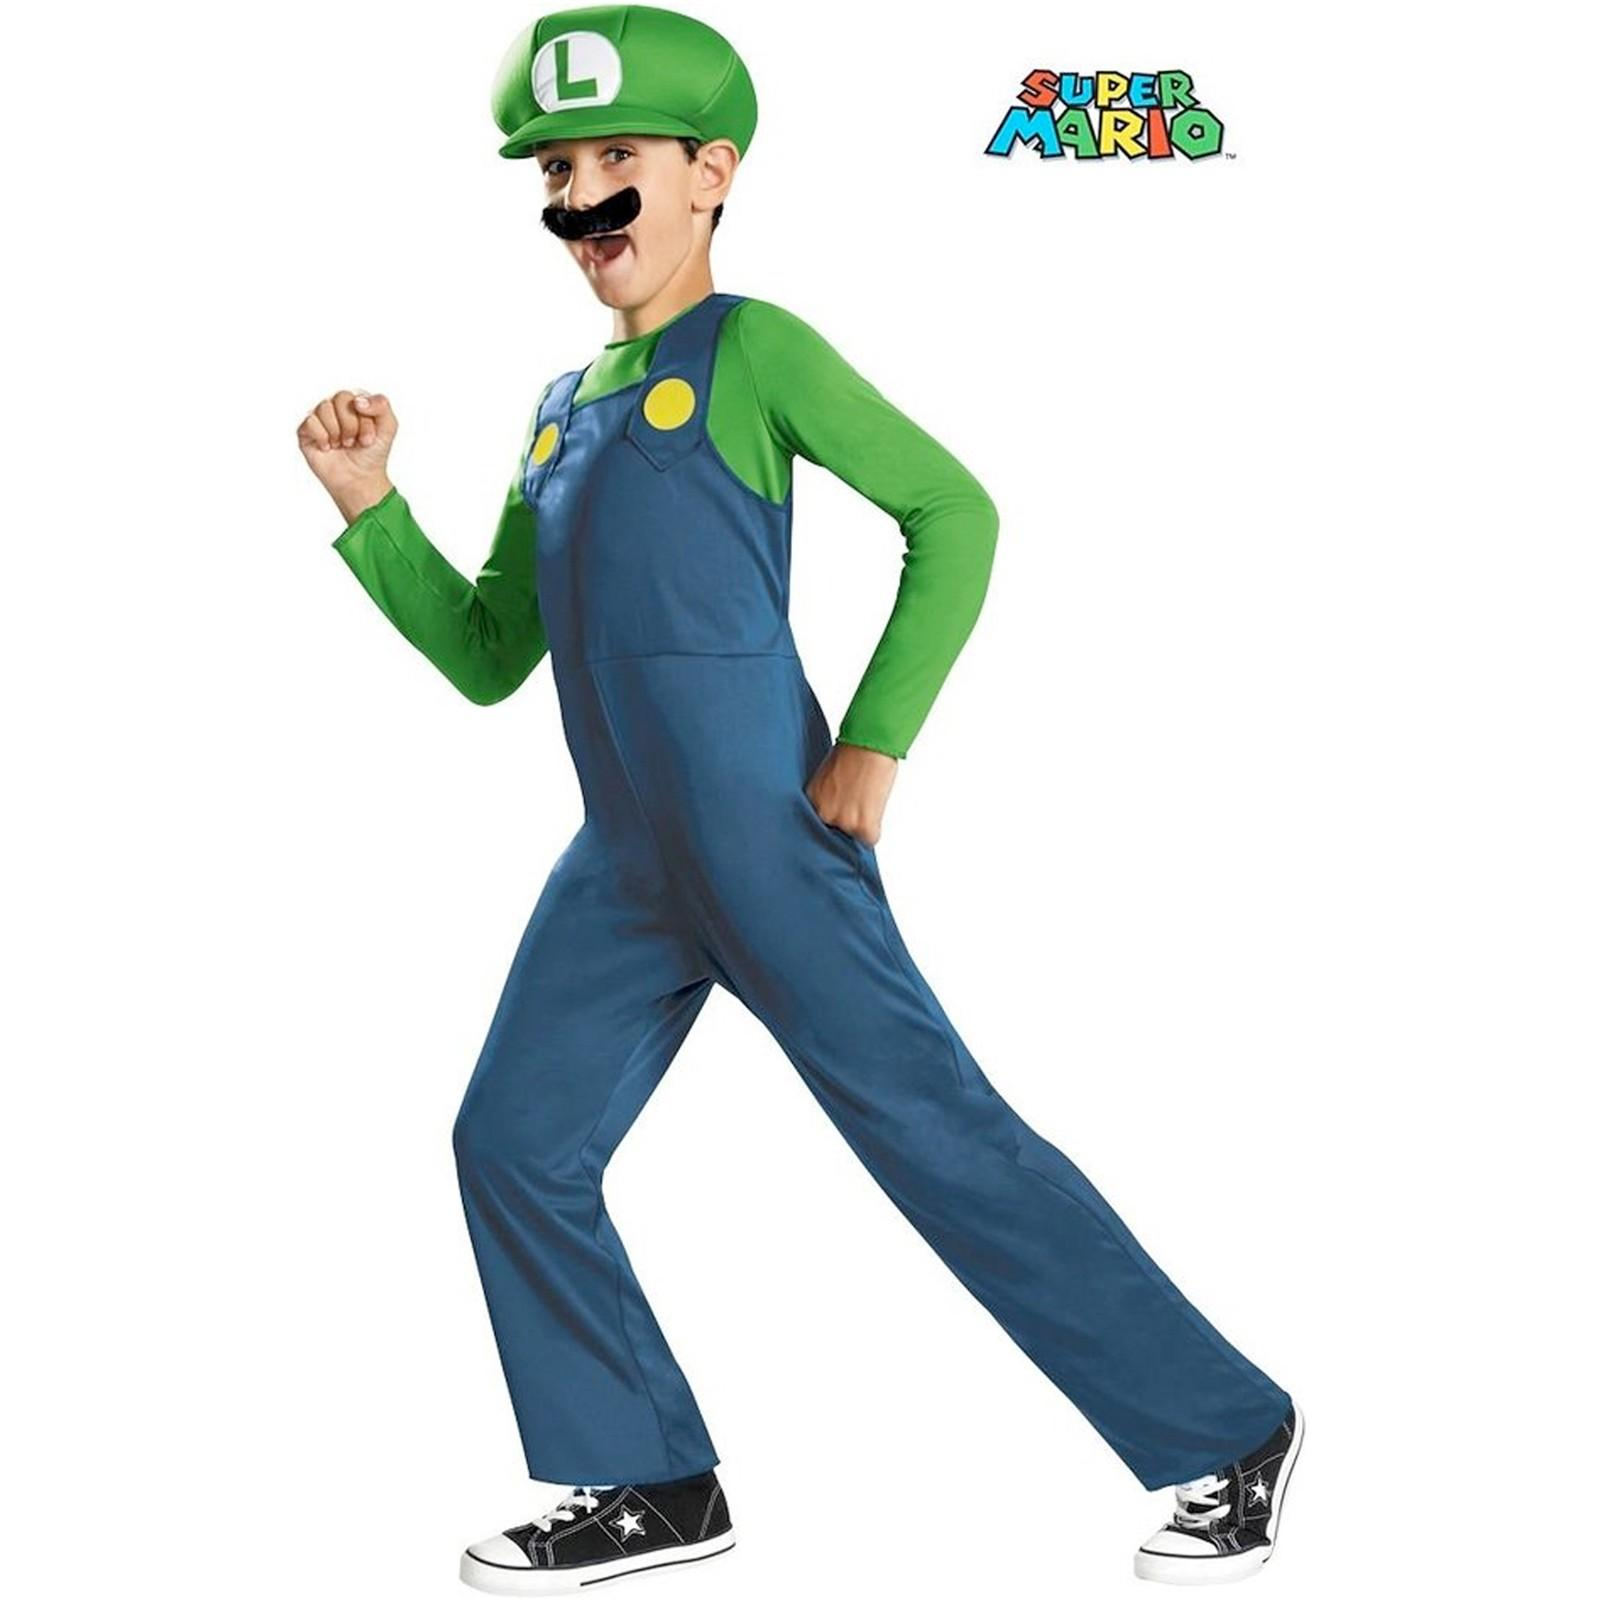 Child Super Mario Bros Luigi Costume  sc 1 st  Walmart & Child Super Mario Bros Luigi Costume - Walmart.com